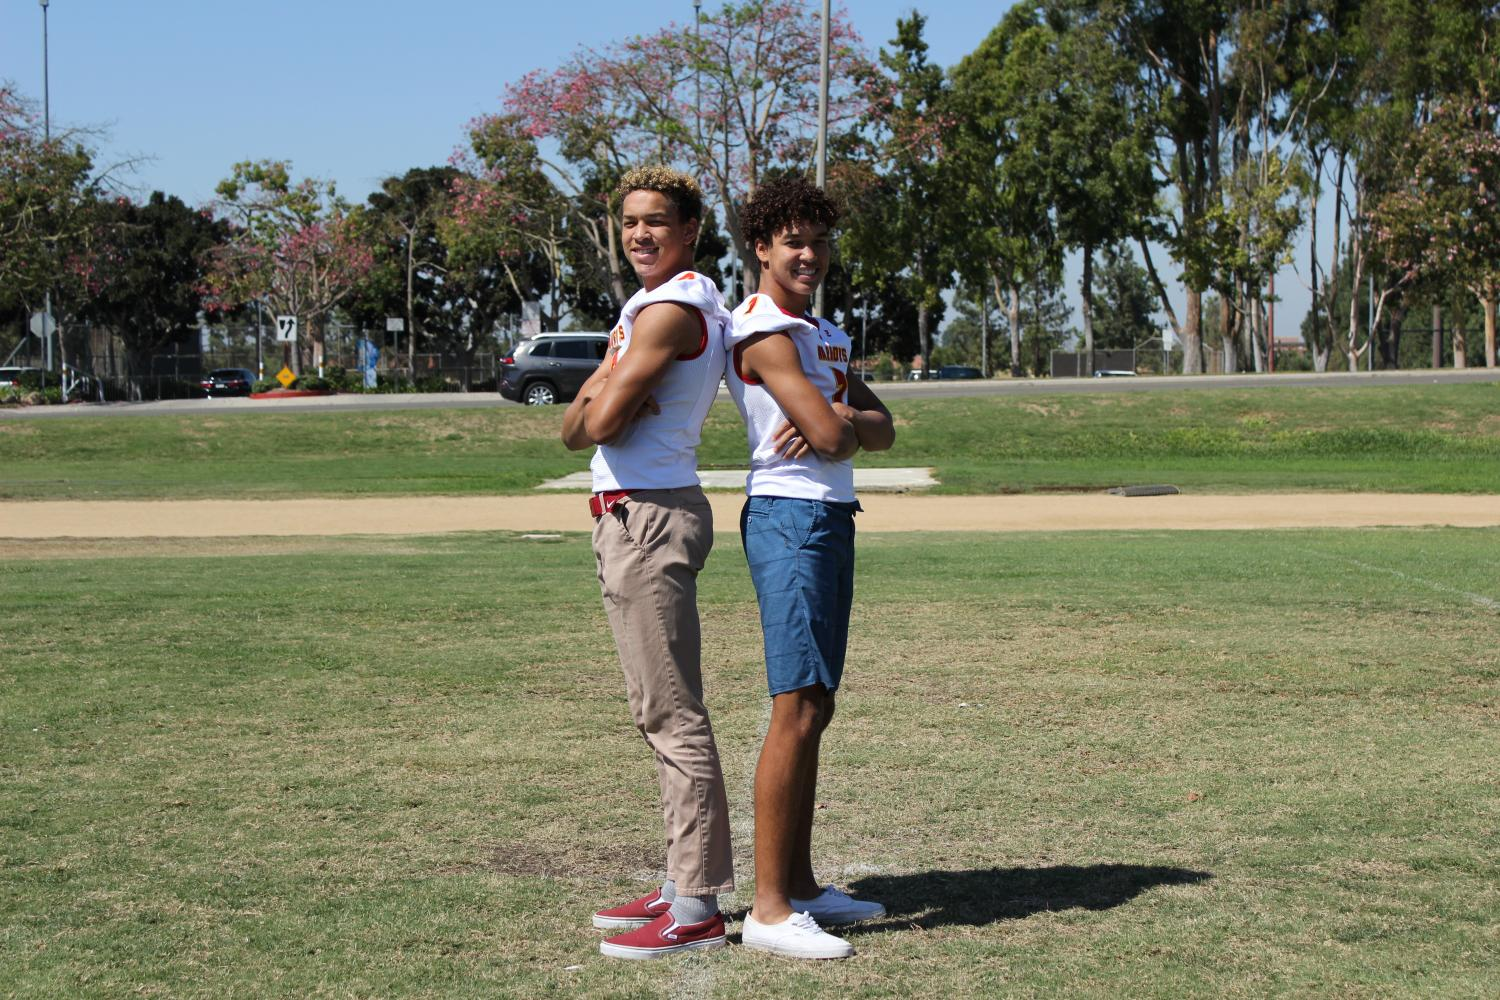 Brothers Nick and Jacob Nash pose back-to-back on the WHS football field in support of each other.